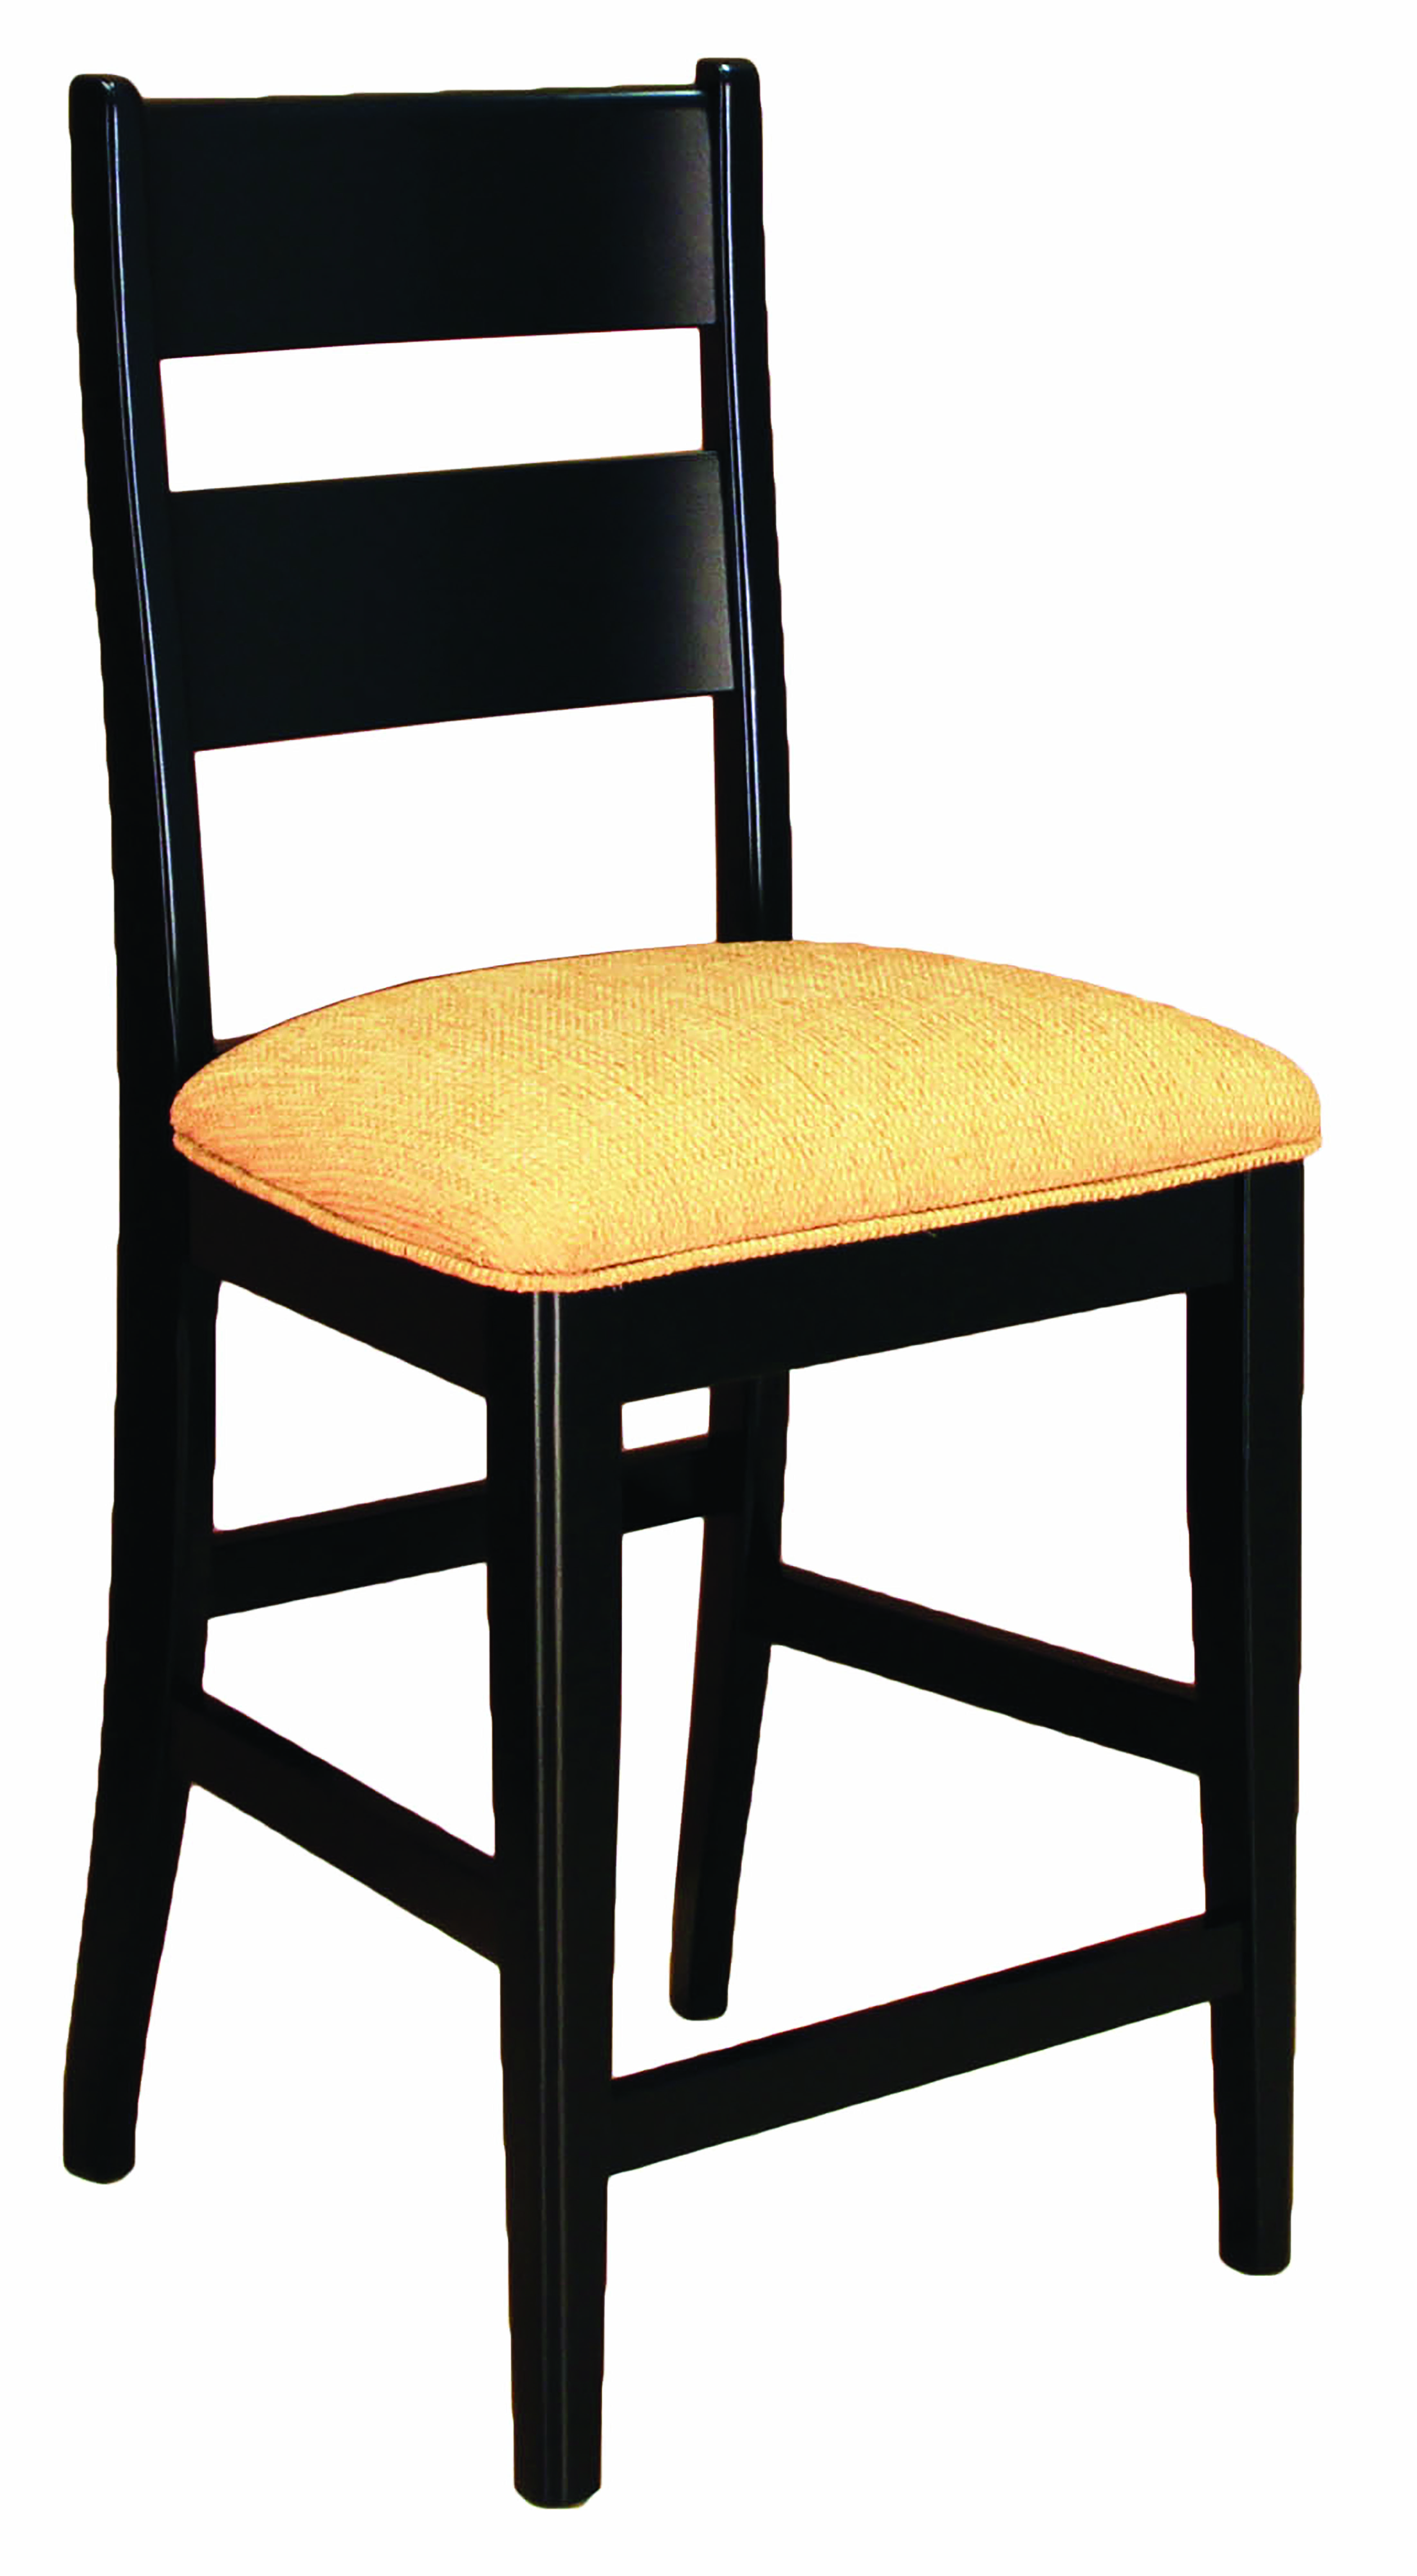 Sonoma counter chair canal dover furniture counter chairs